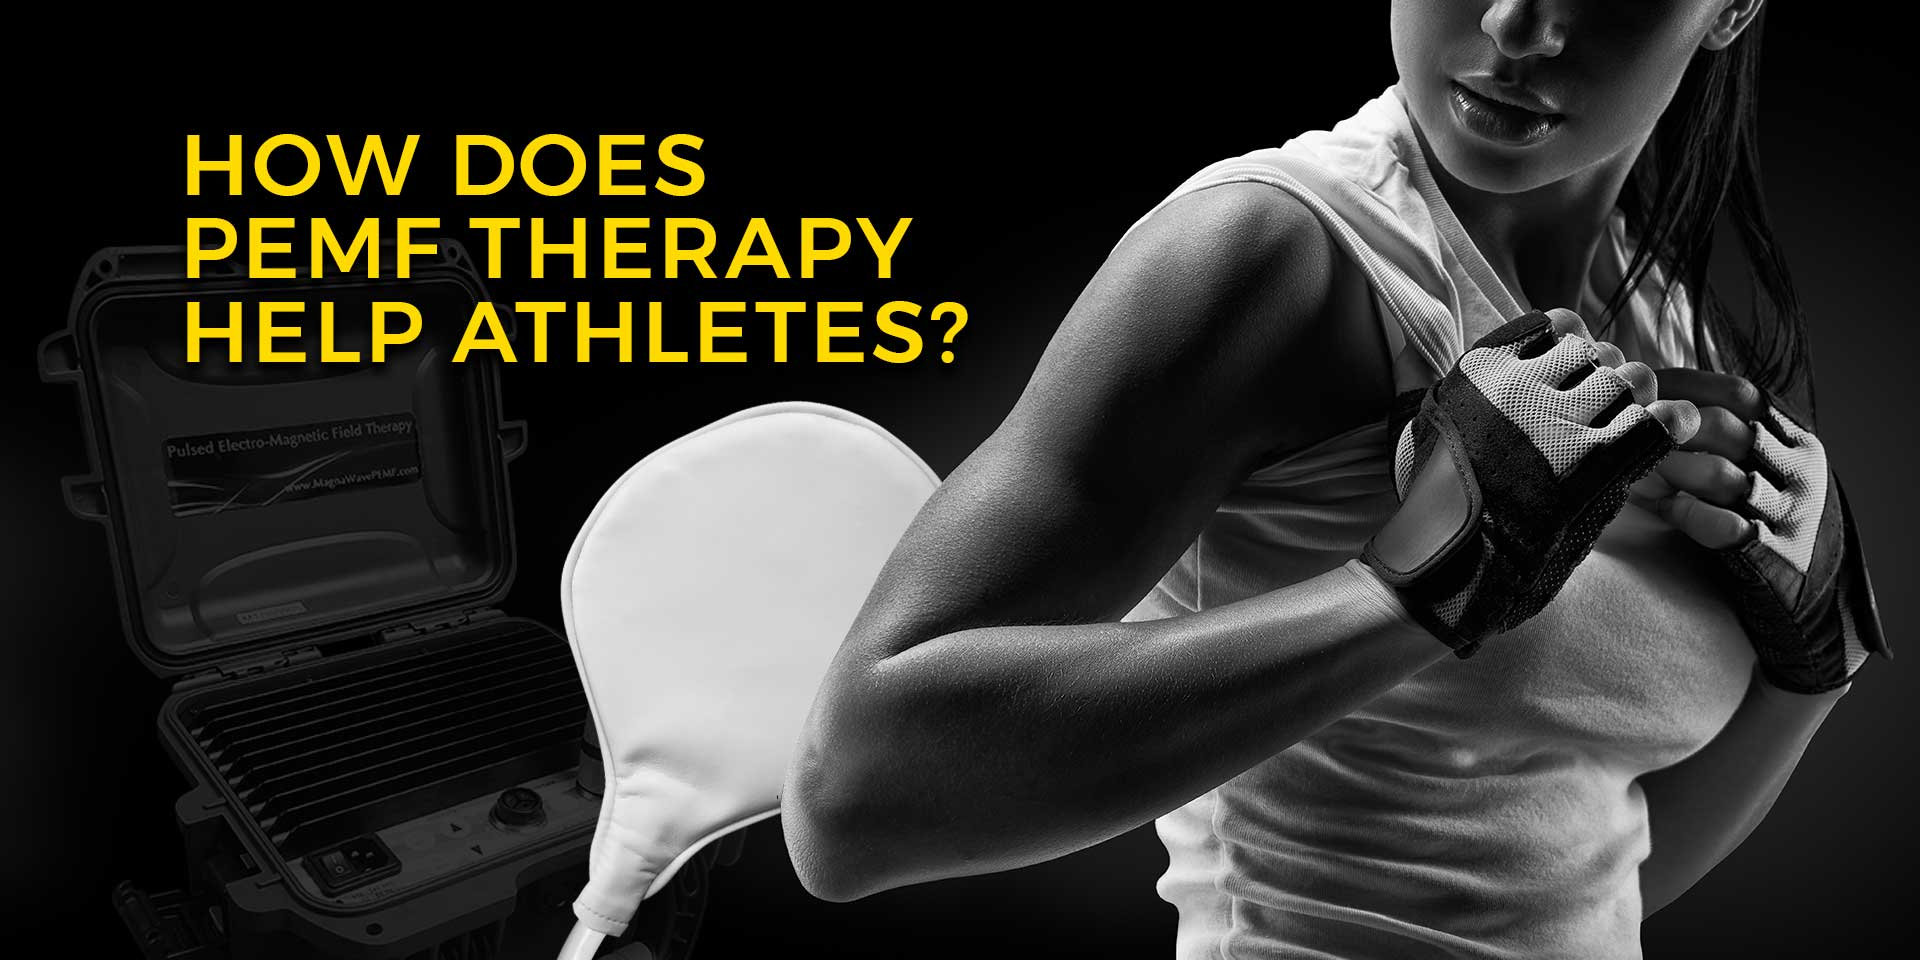 How Does PEMF Therapy Help Athletes?